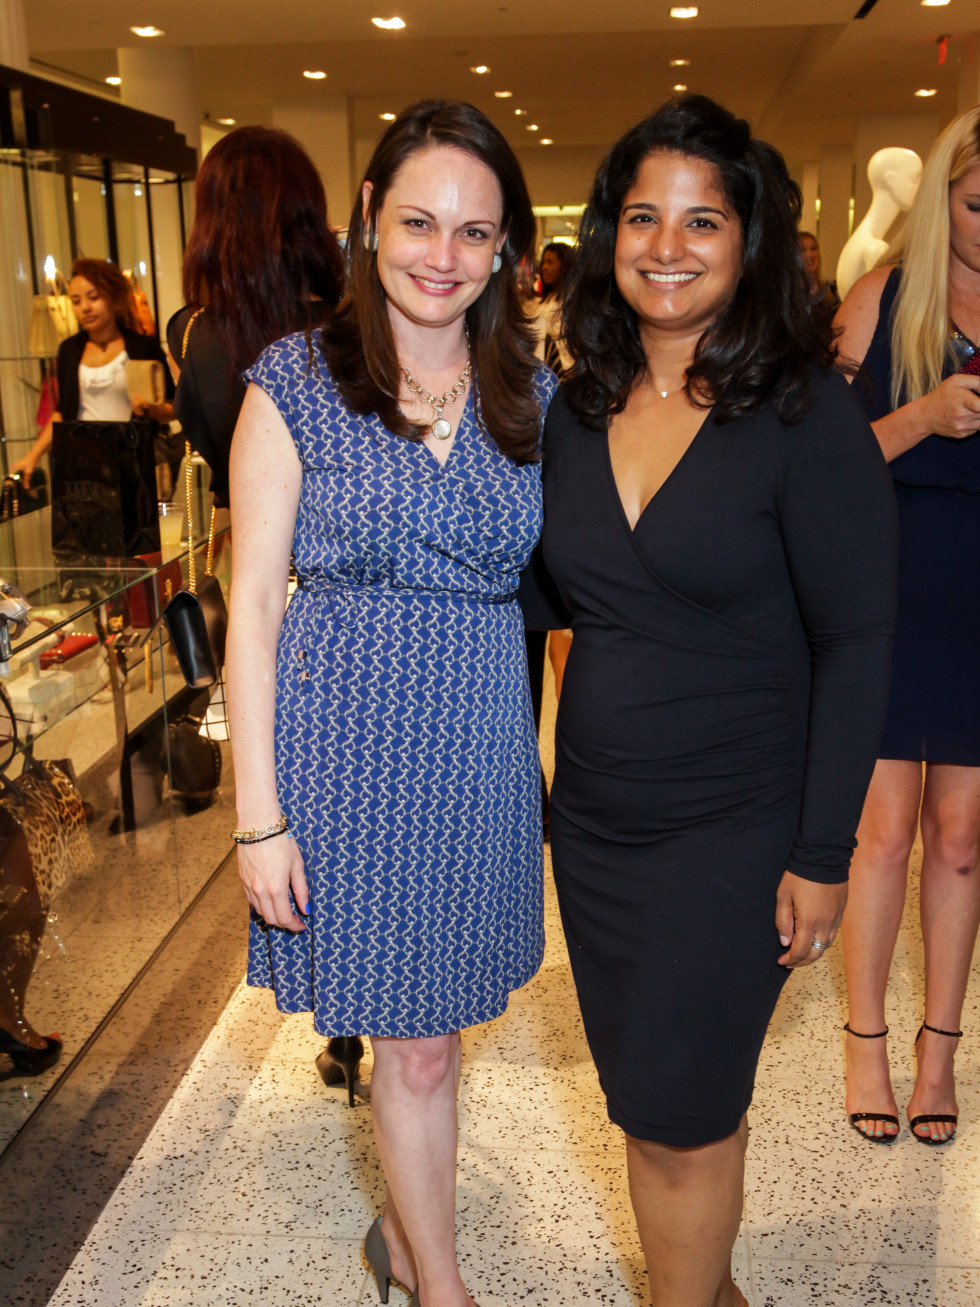 Houston, Ellevate event at Tootsies, August 2015, Remy Norman, Mariam Jacob.